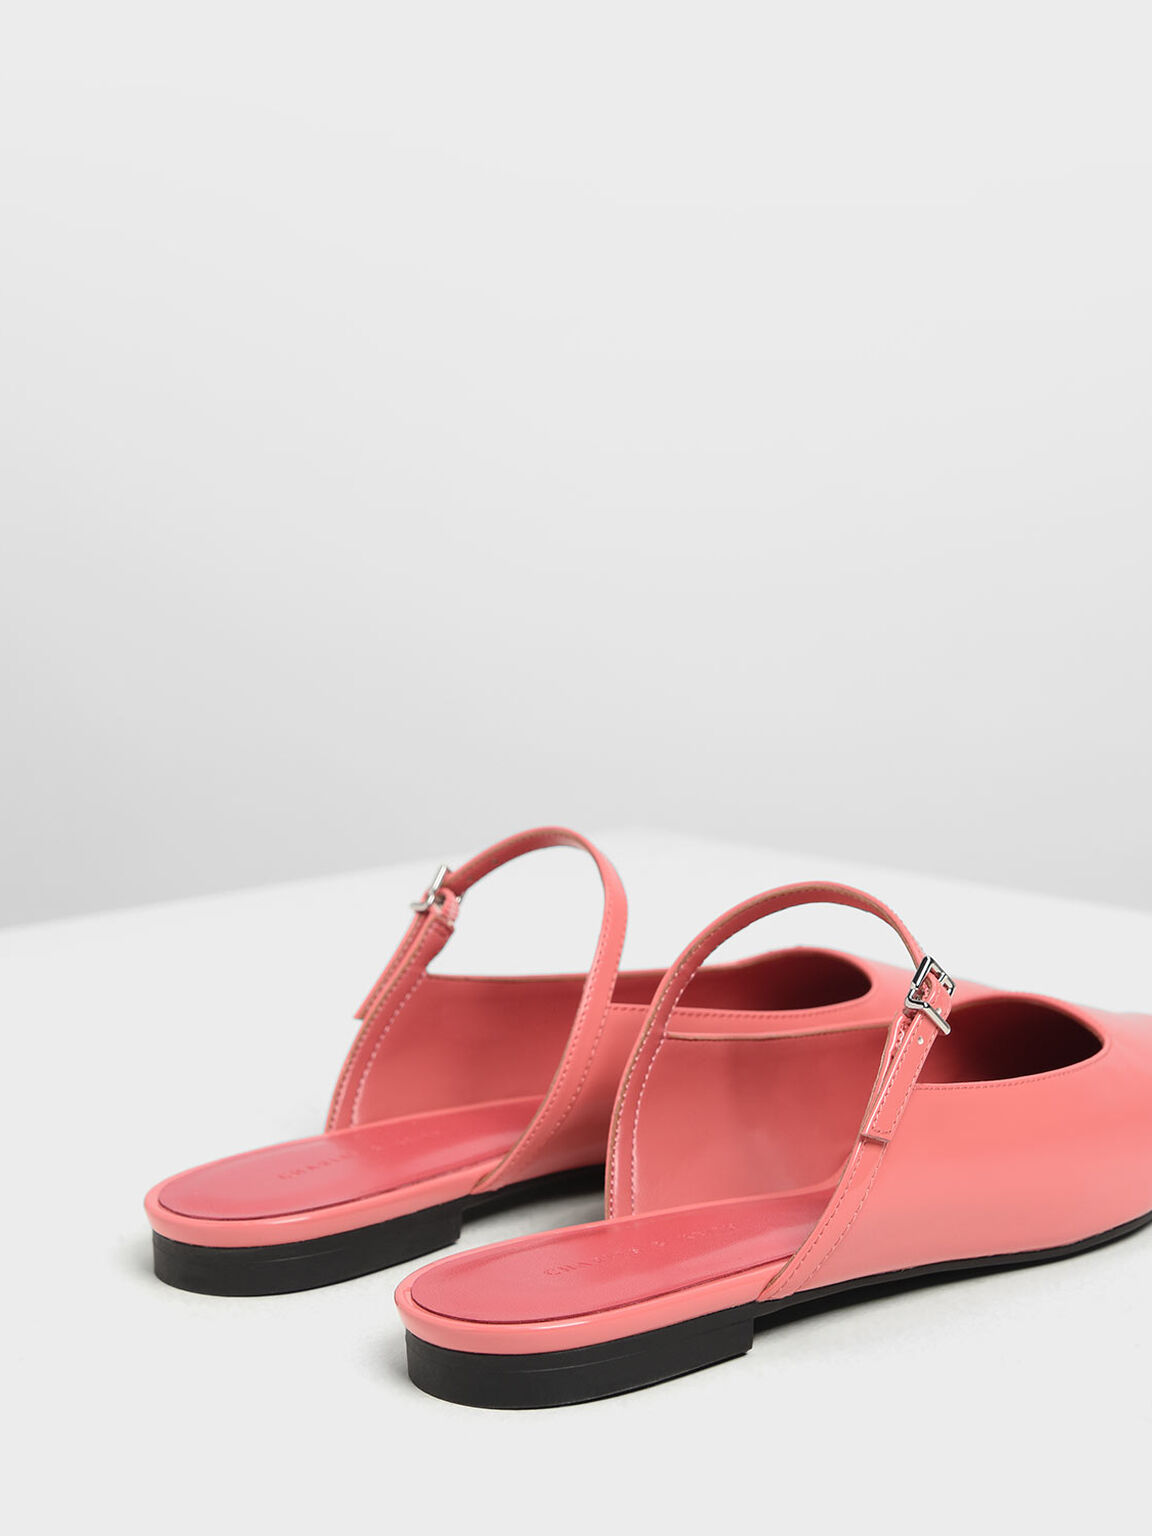 Patent Mary Jane Mules, Coral Pink, hi-res